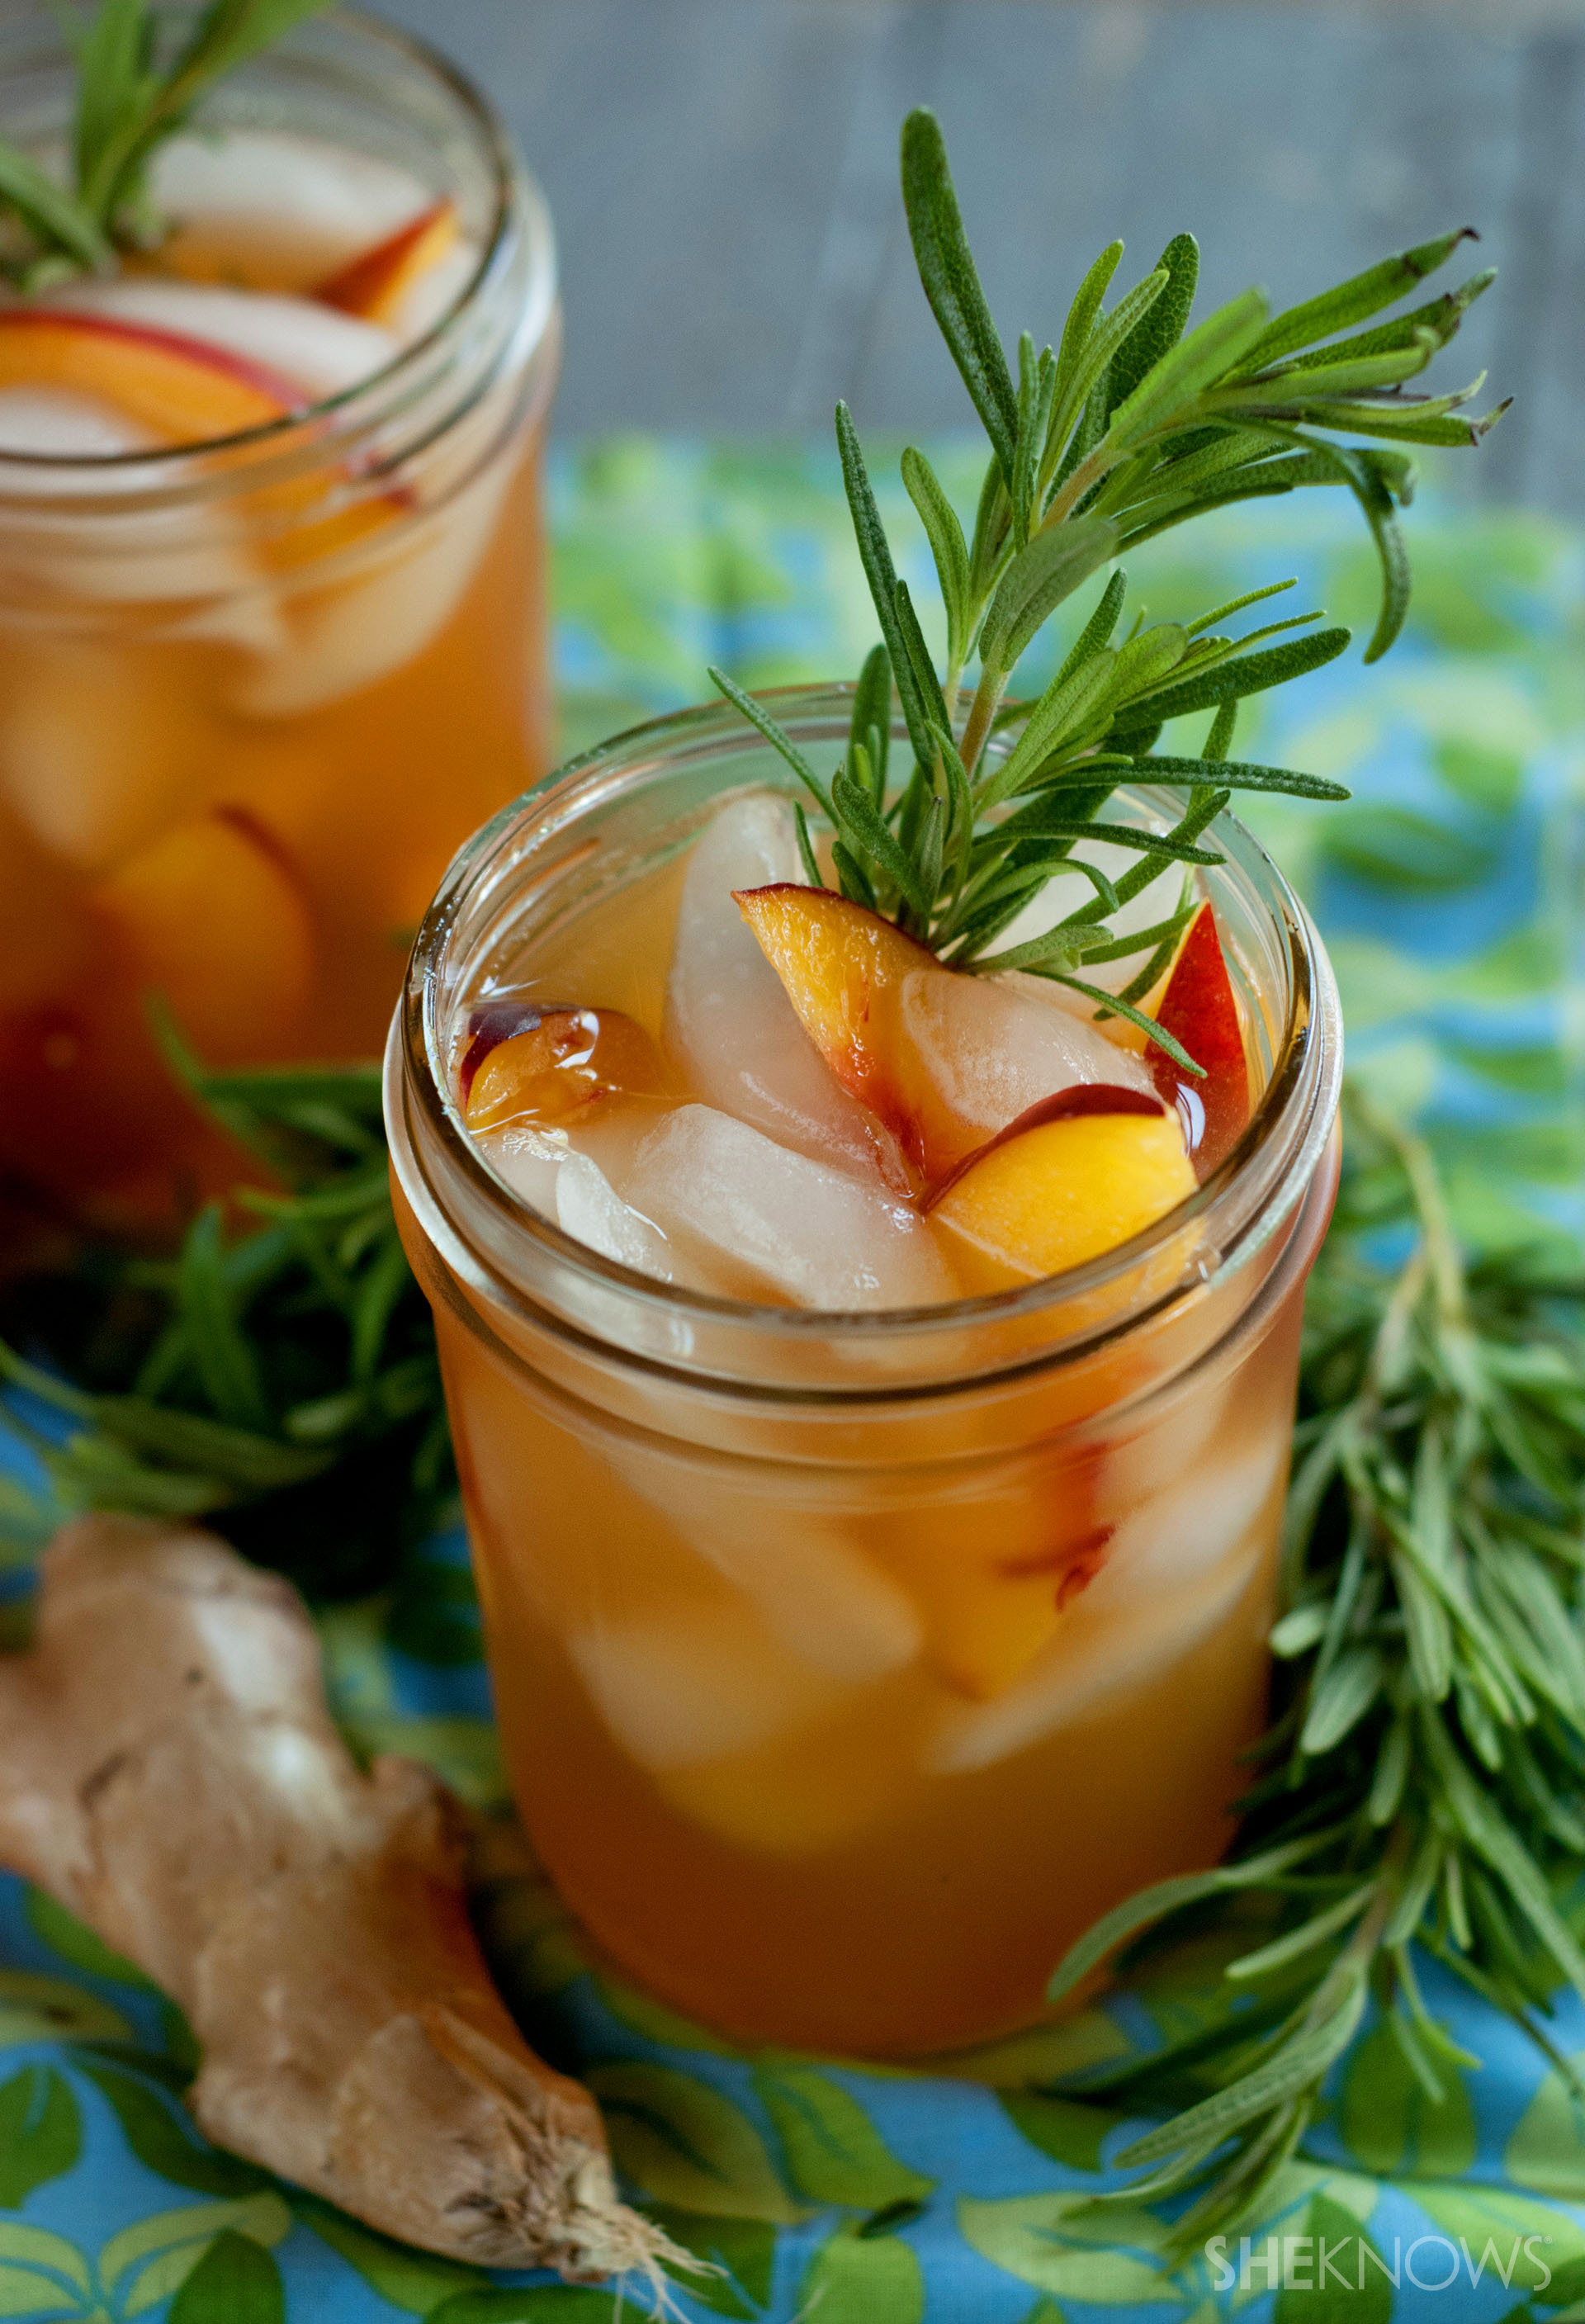 Iced rosemary ginger peach green tea